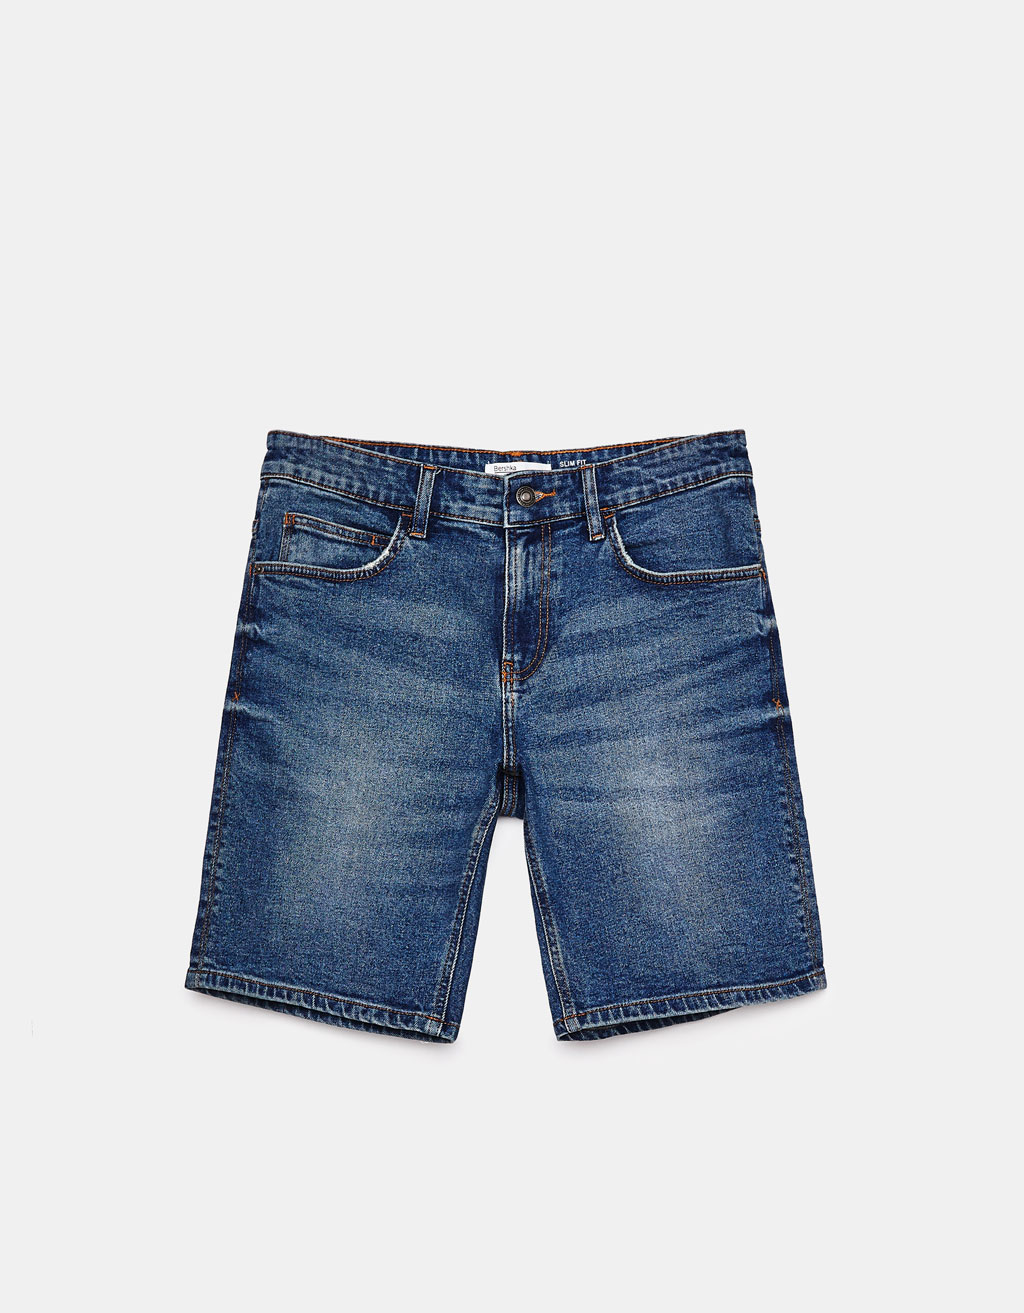 Slim fit comfort denim bermuda